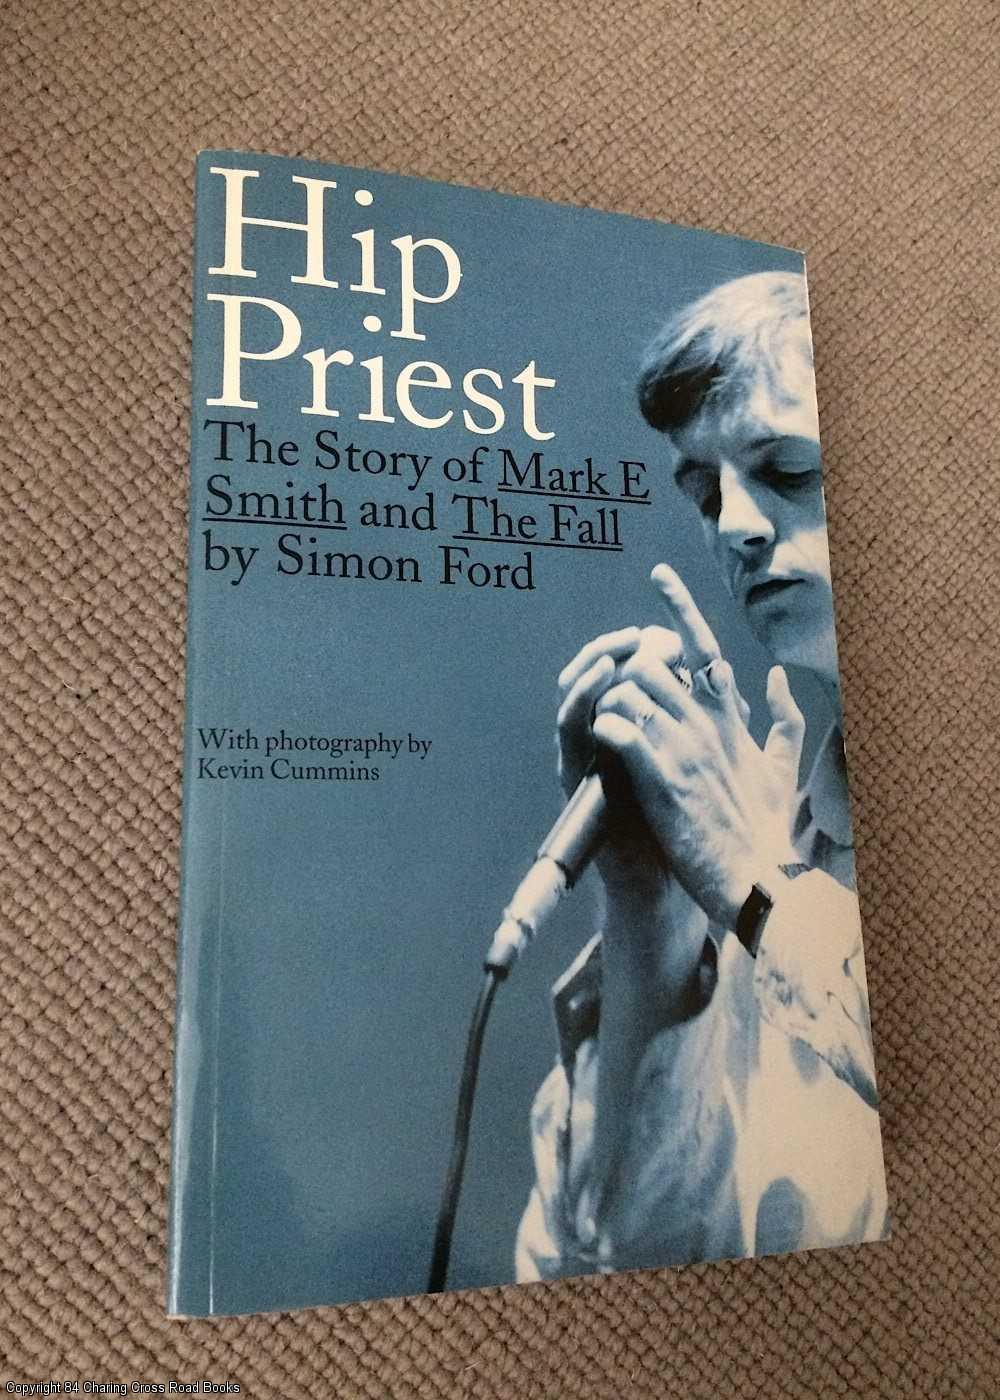 FORD, SIMON; CUMMINS, KEVIN - Hip Priest : The Story of Mark E. Smith and the Fall